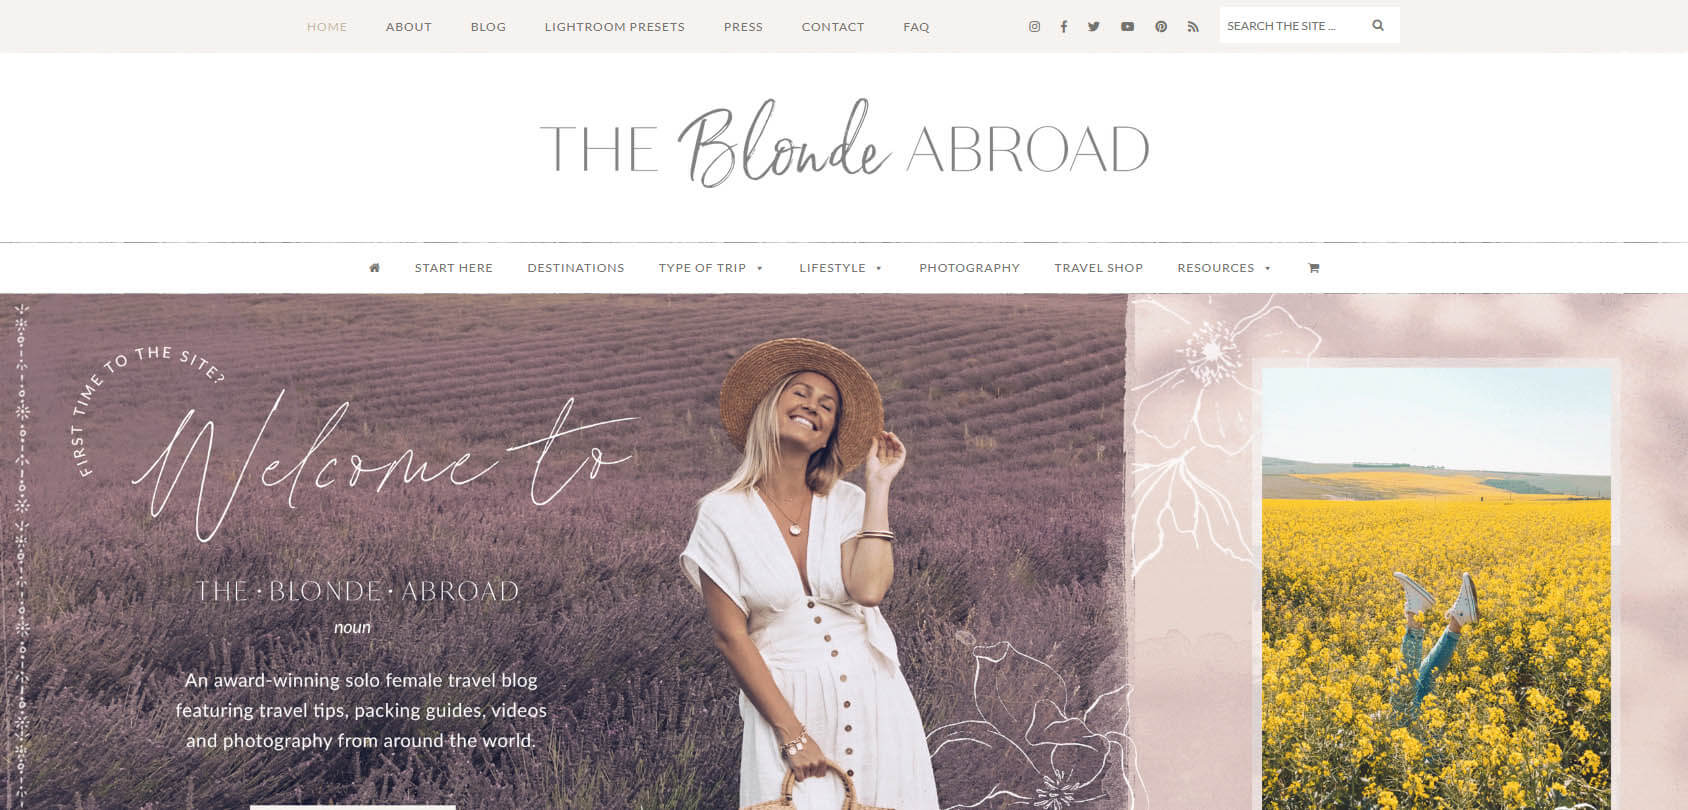 The Blonde Abroad Homepage